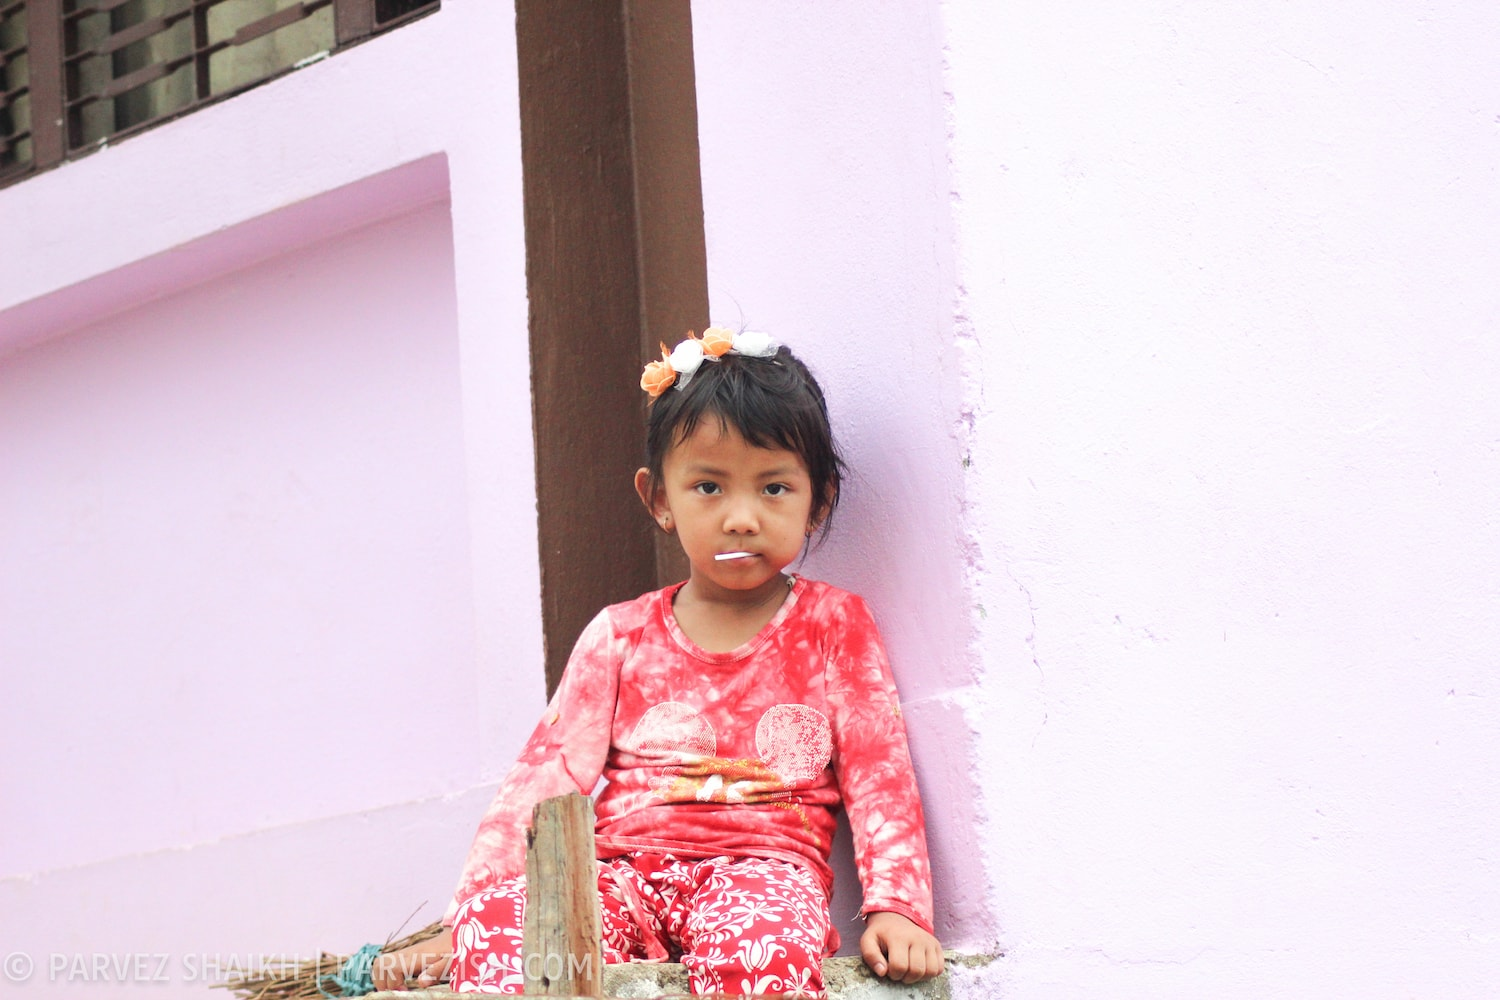 A Young Girl in Tansen, Nepal